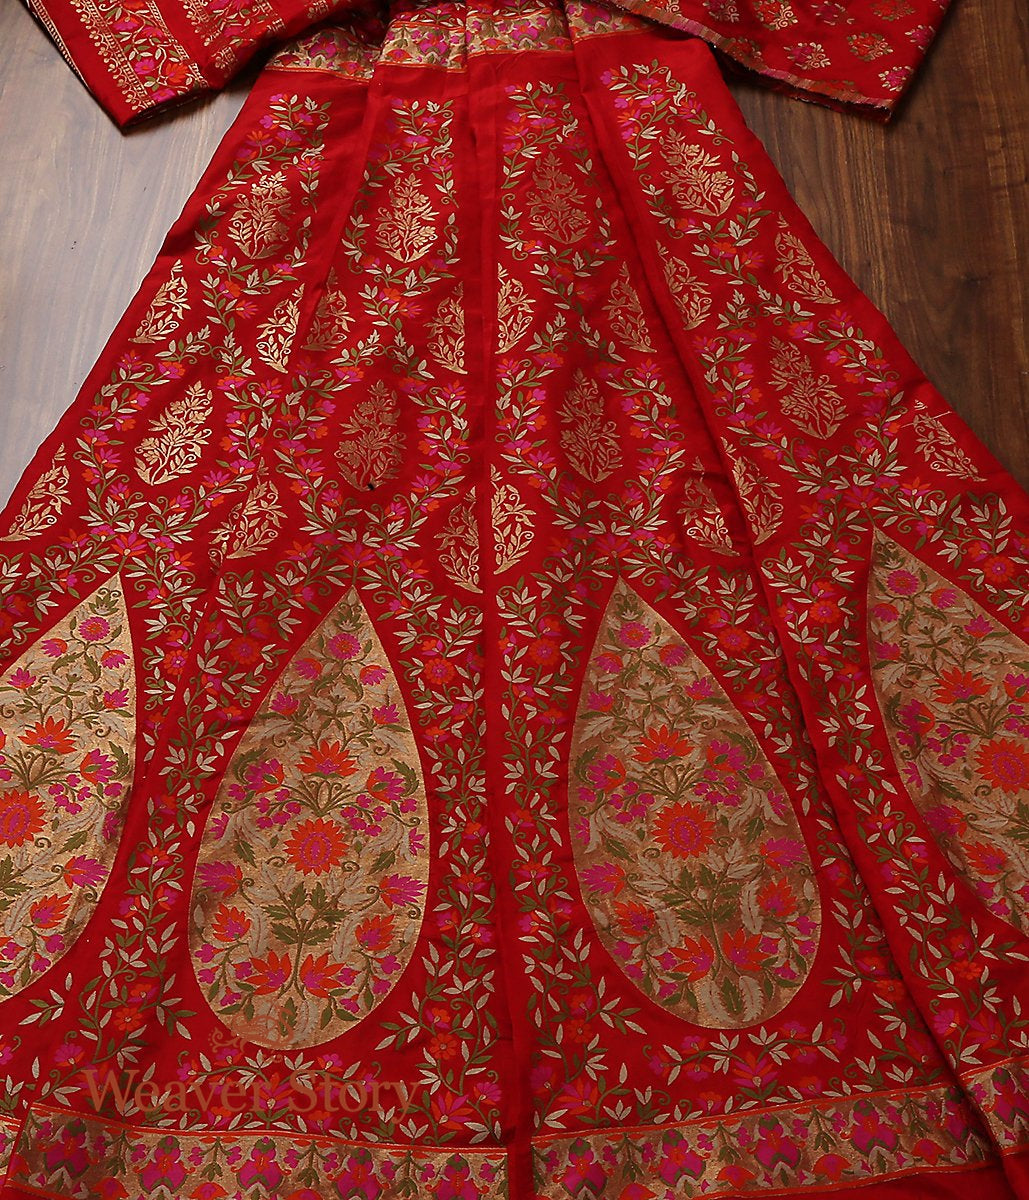 Handwoven Banarasi Red with Meenakari Silk